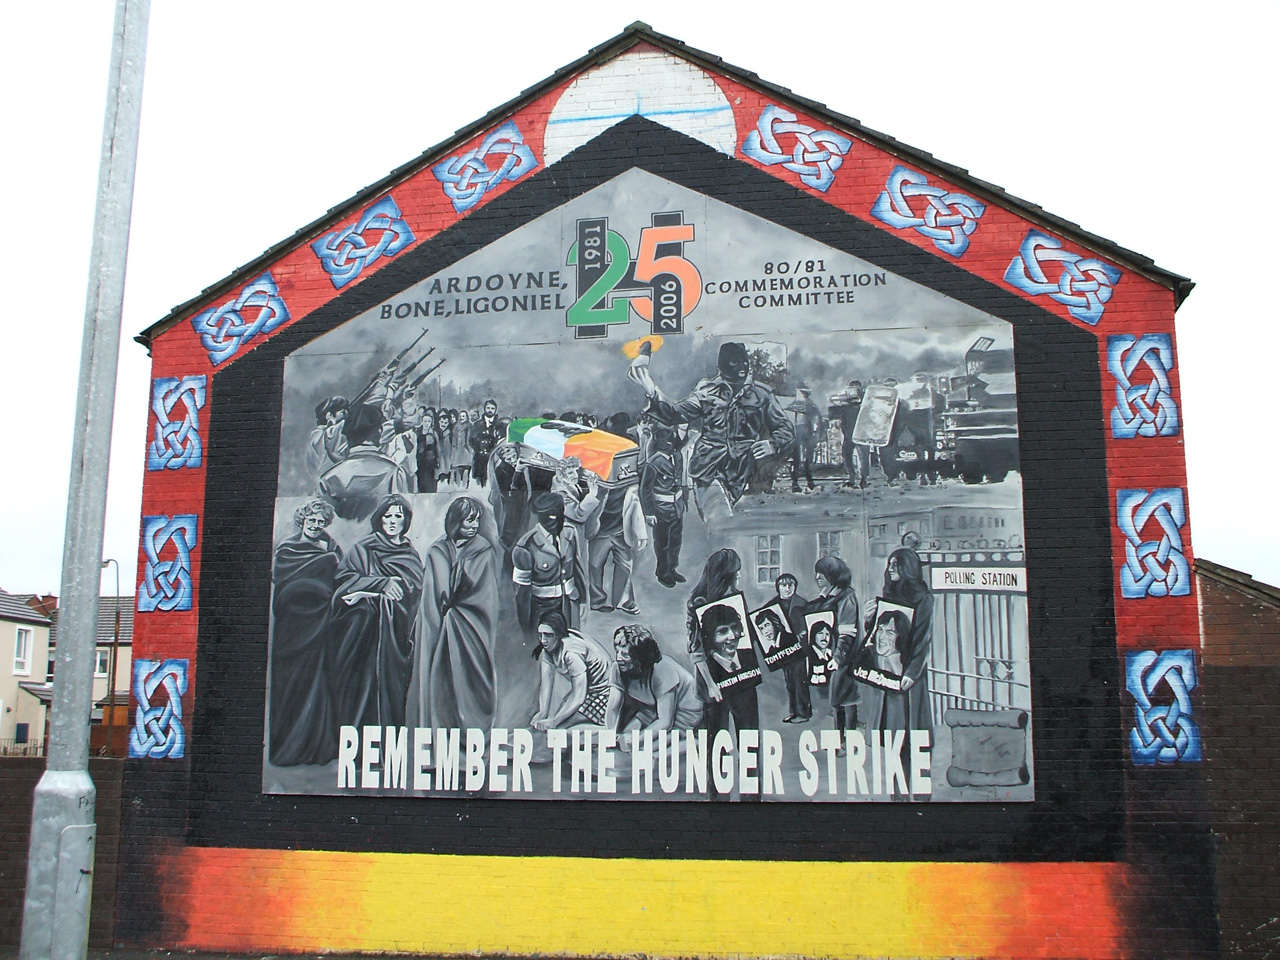 Mural painted on side of building with various protest scenes, says Remember the Hunger Strike